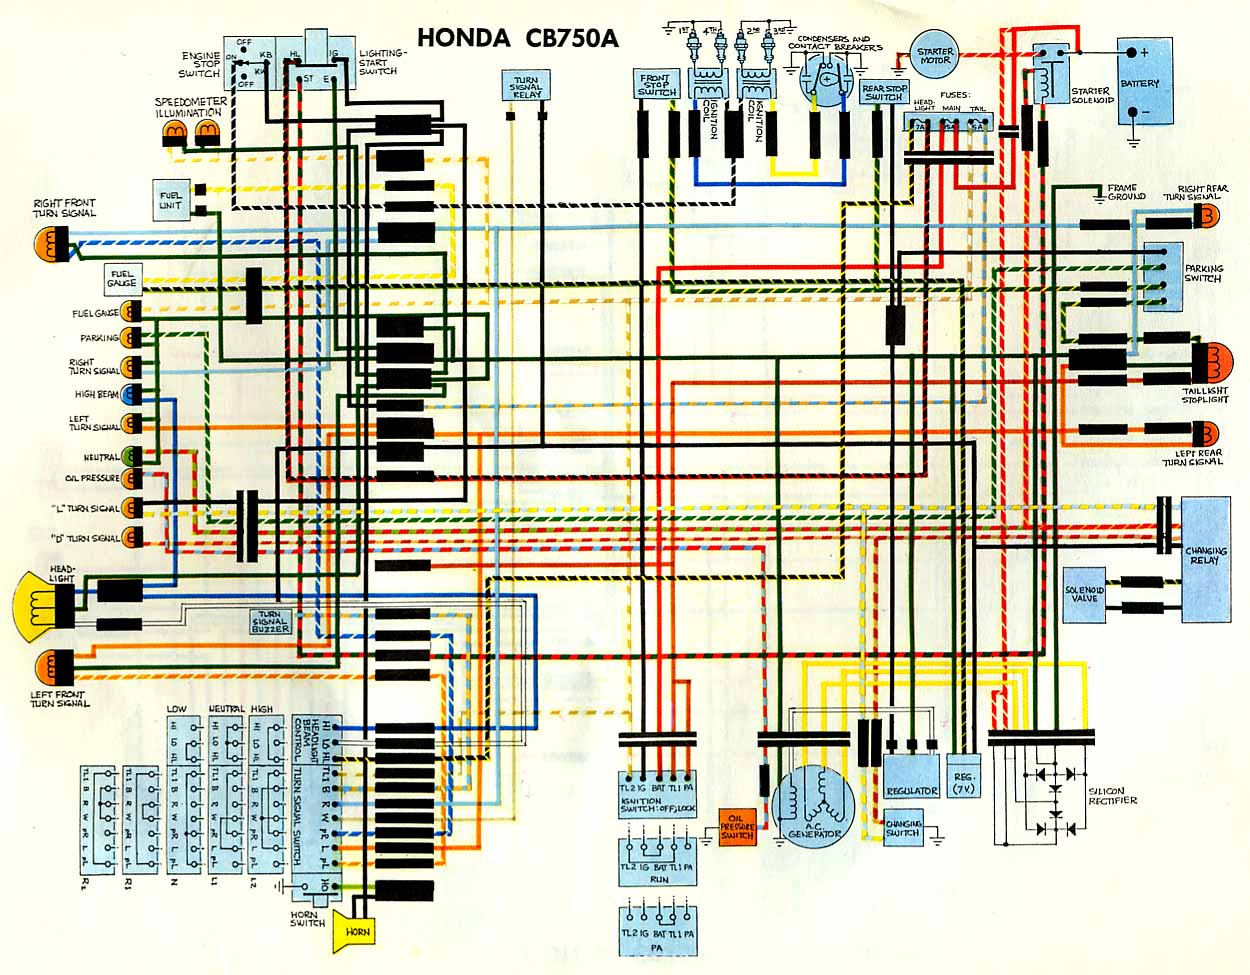 Wiring Diagrams on sincgars radio configurations diagrams, led circuit diagrams, engine diagrams, switch diagrams, friendship bracelet diagrams, pinout diagrams, smart car diagrams, electrical diagrams, motor diagrams, lighting diagrams, hvac diagrams, transformer diagrams, battery diagrams, honda motorcycle repair diagrams, electronic circuit diagrams, internet of things diagrams, series and parallel circuits diagrams, troubleshooting diagrams, gmc fuse box diagrams, snatch block diagrams,